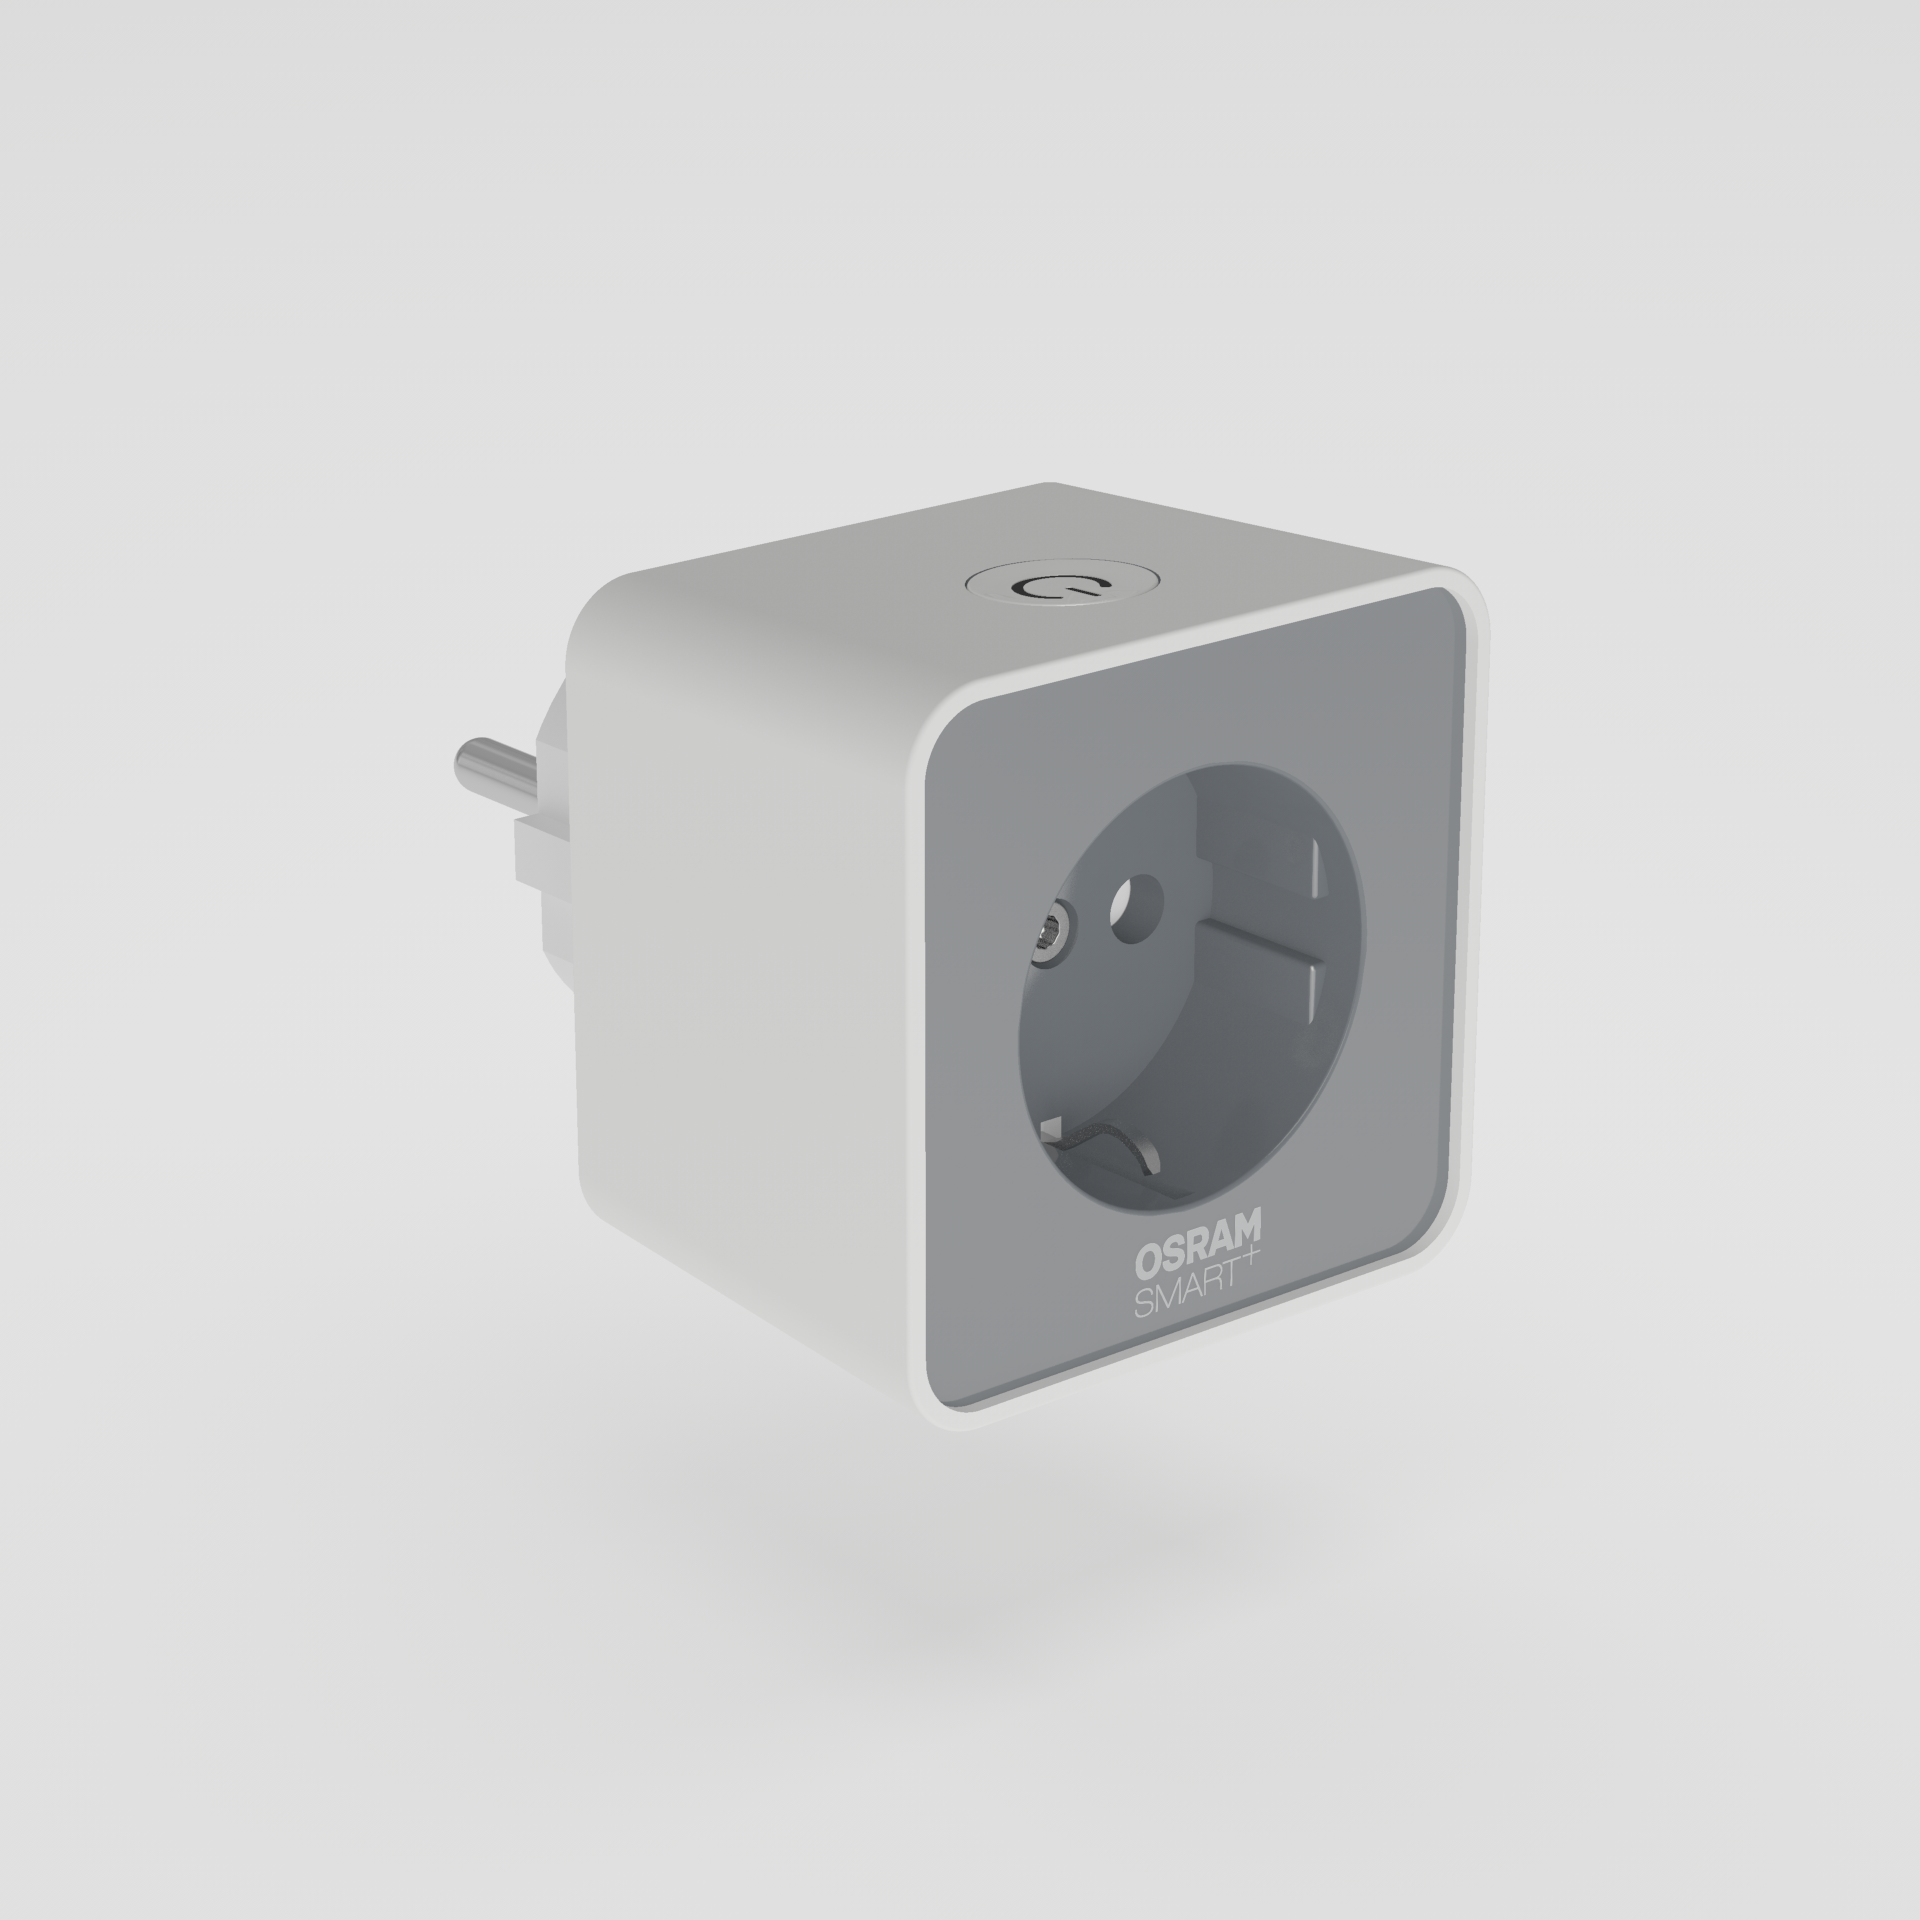 3d osram plug for samsung smartthings with cinema4d